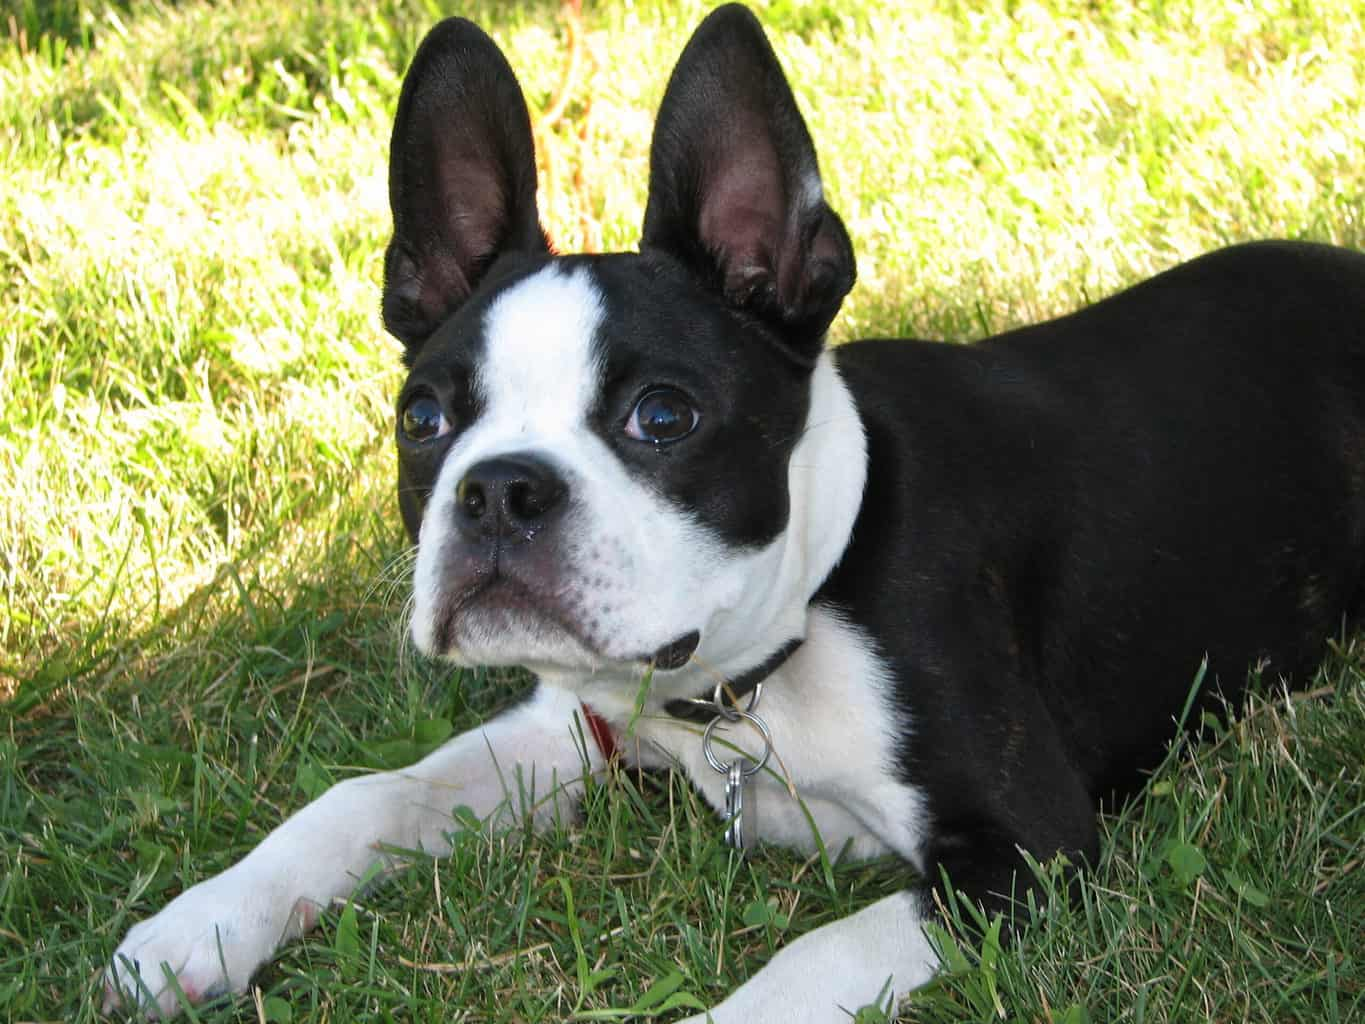 Boston Terrier look like he's about to cry